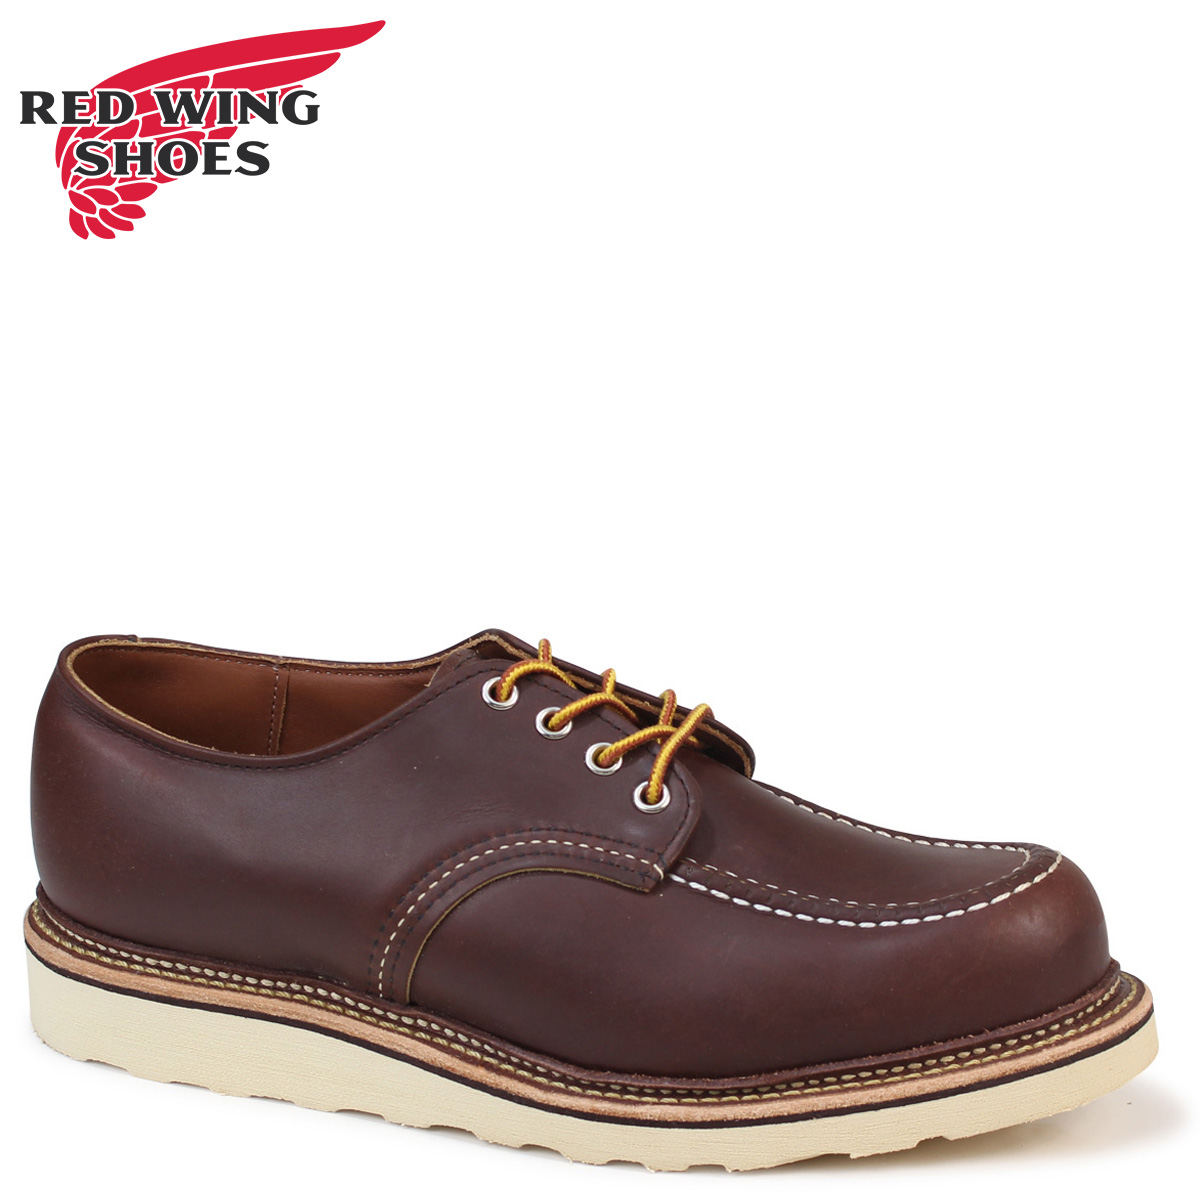 SneaK Online Shop | Rakuten Global Market: Redwing RED WING boots Oxford 8109 Moc Toe Work Oxford D wise leather mens Made in USA Red Wing